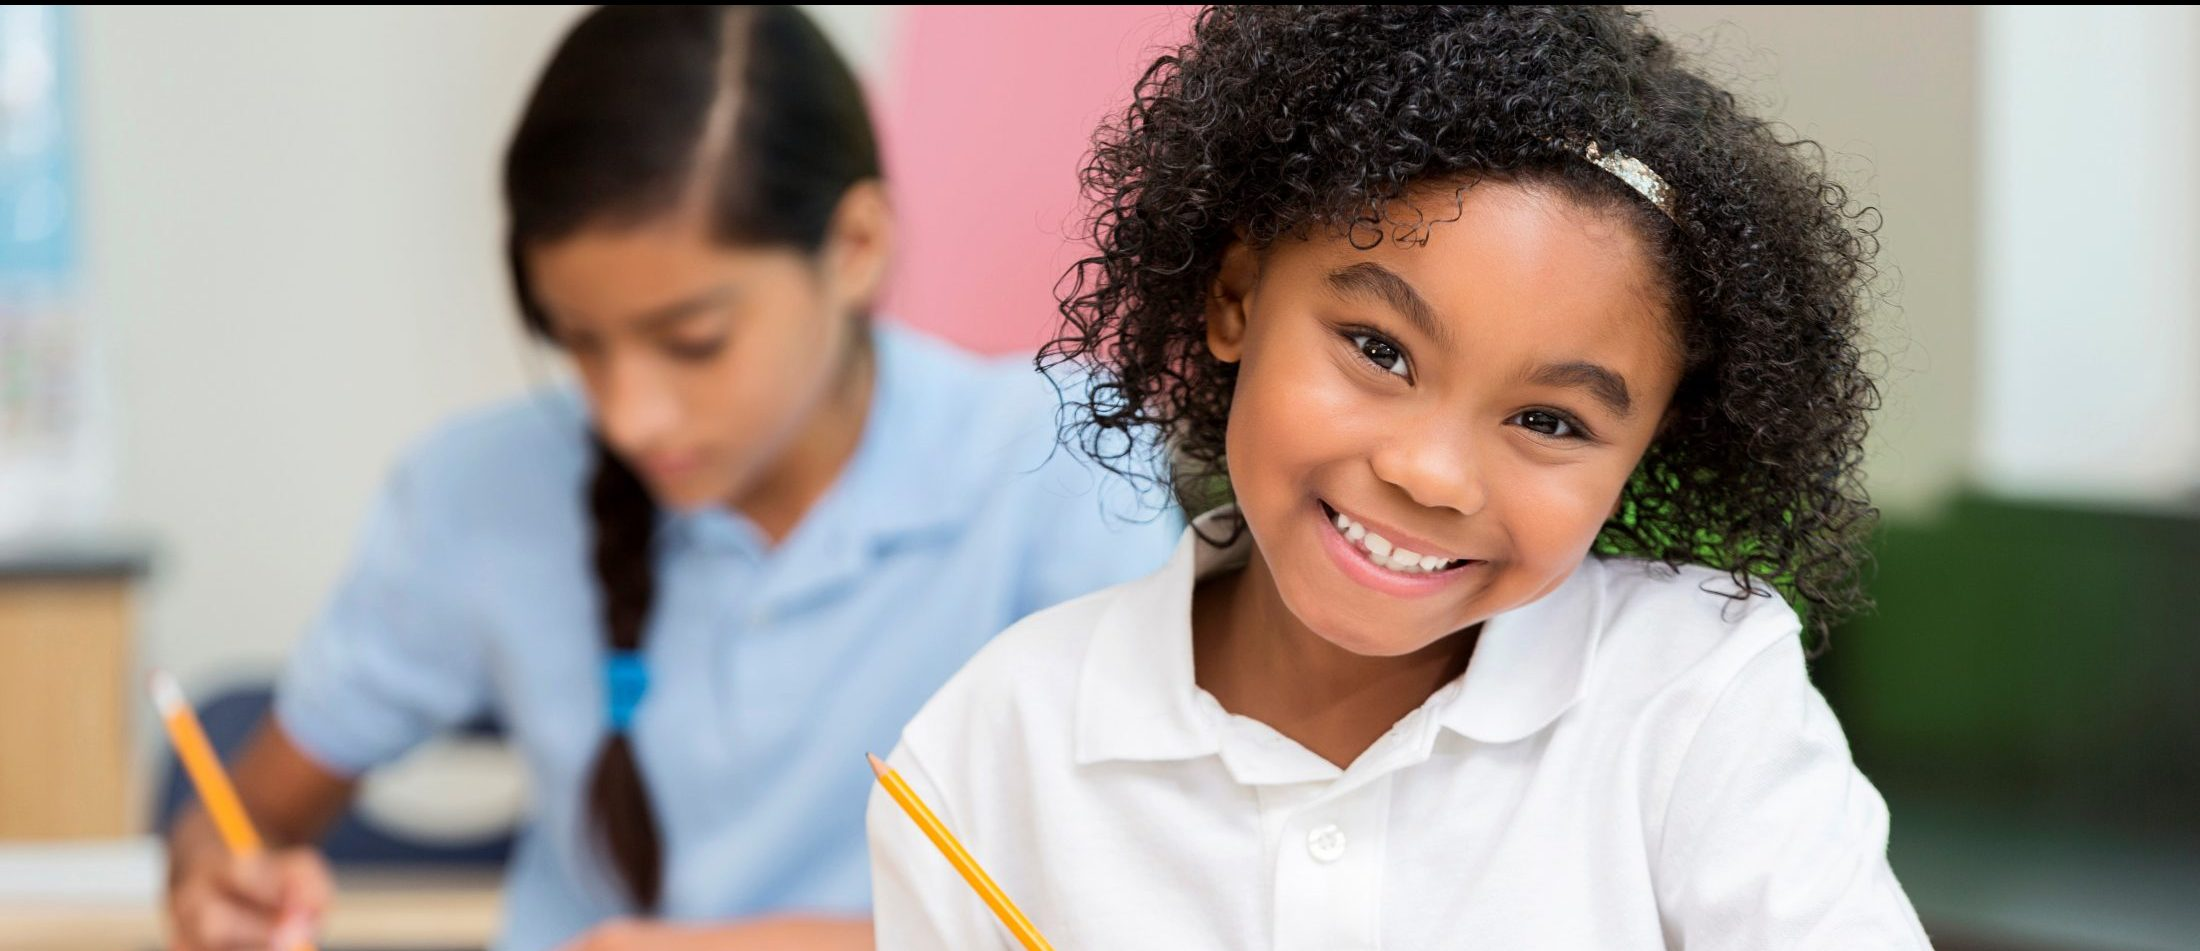 Elementary student smiling at desk.